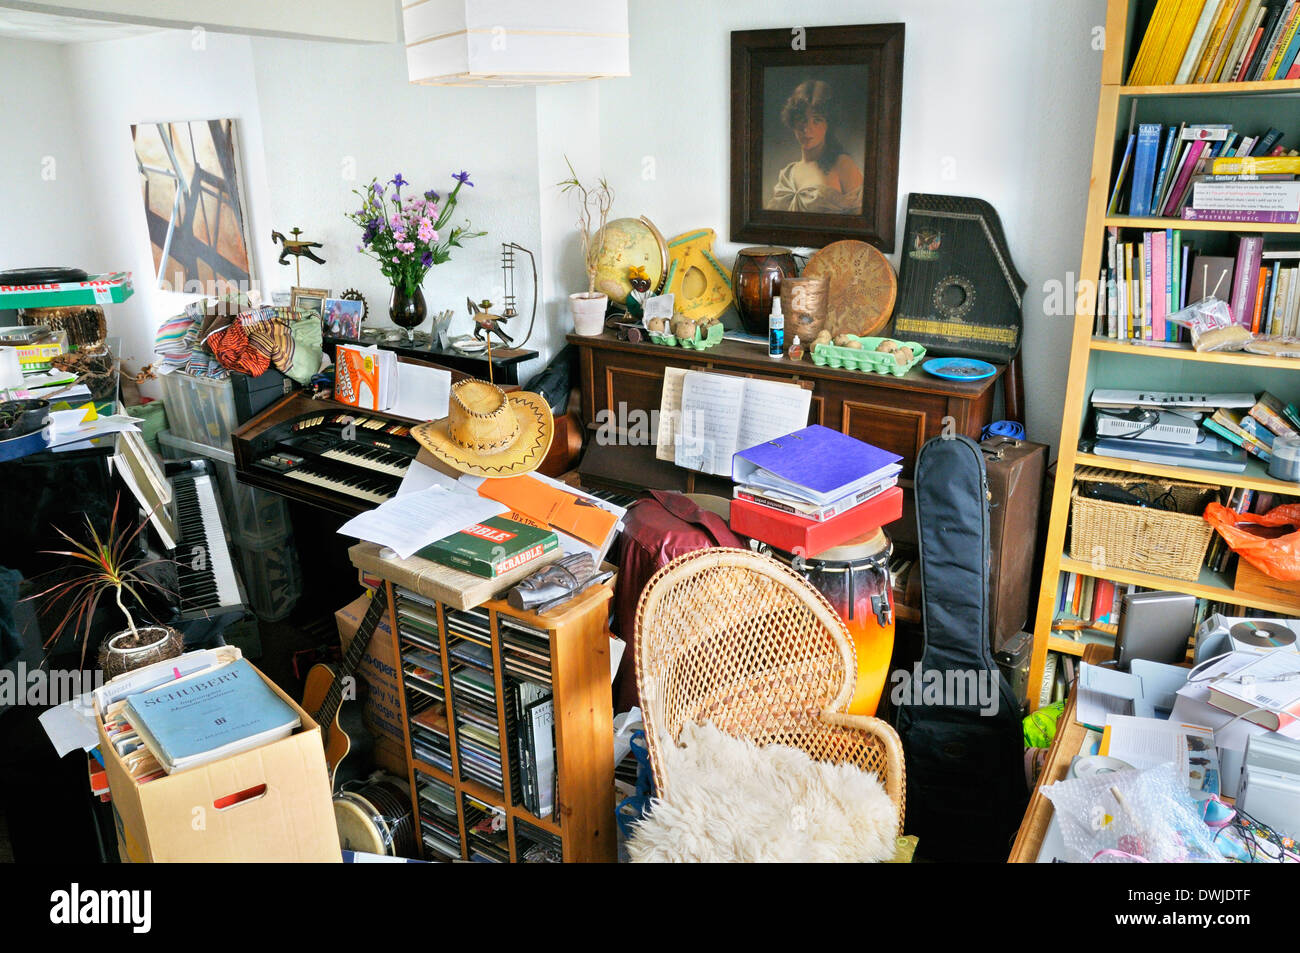 Room stacked full of possessions - Stock Image